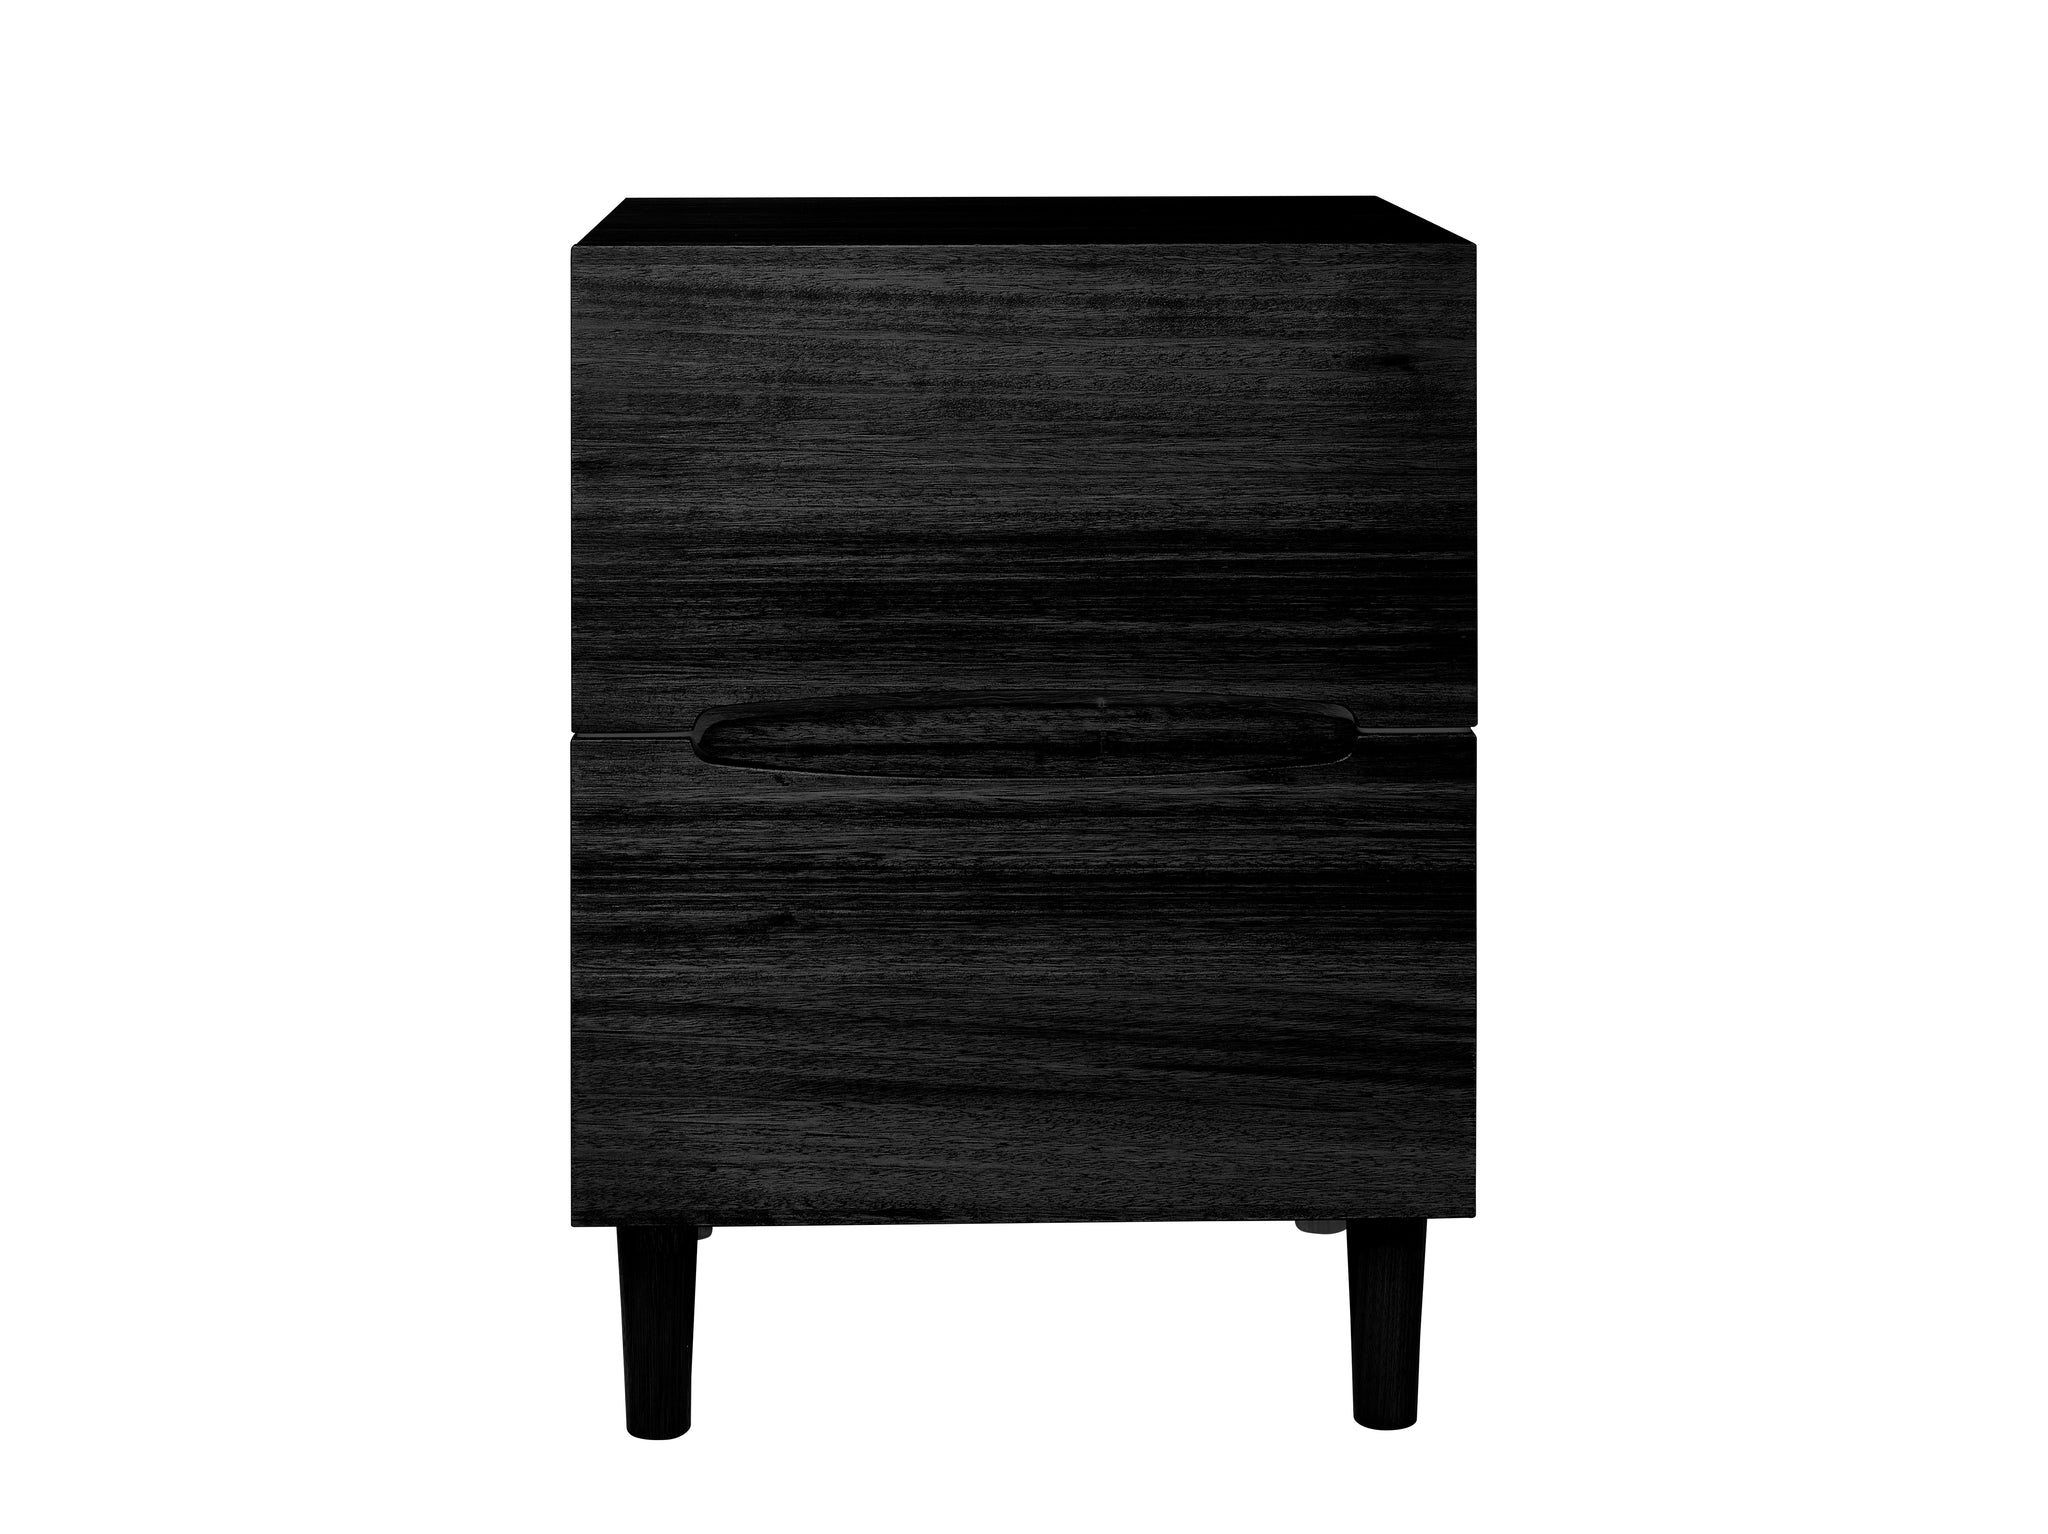 My Design Narrow Bedside Table With Ellipse Cut Out Handle Spindle L Snooze